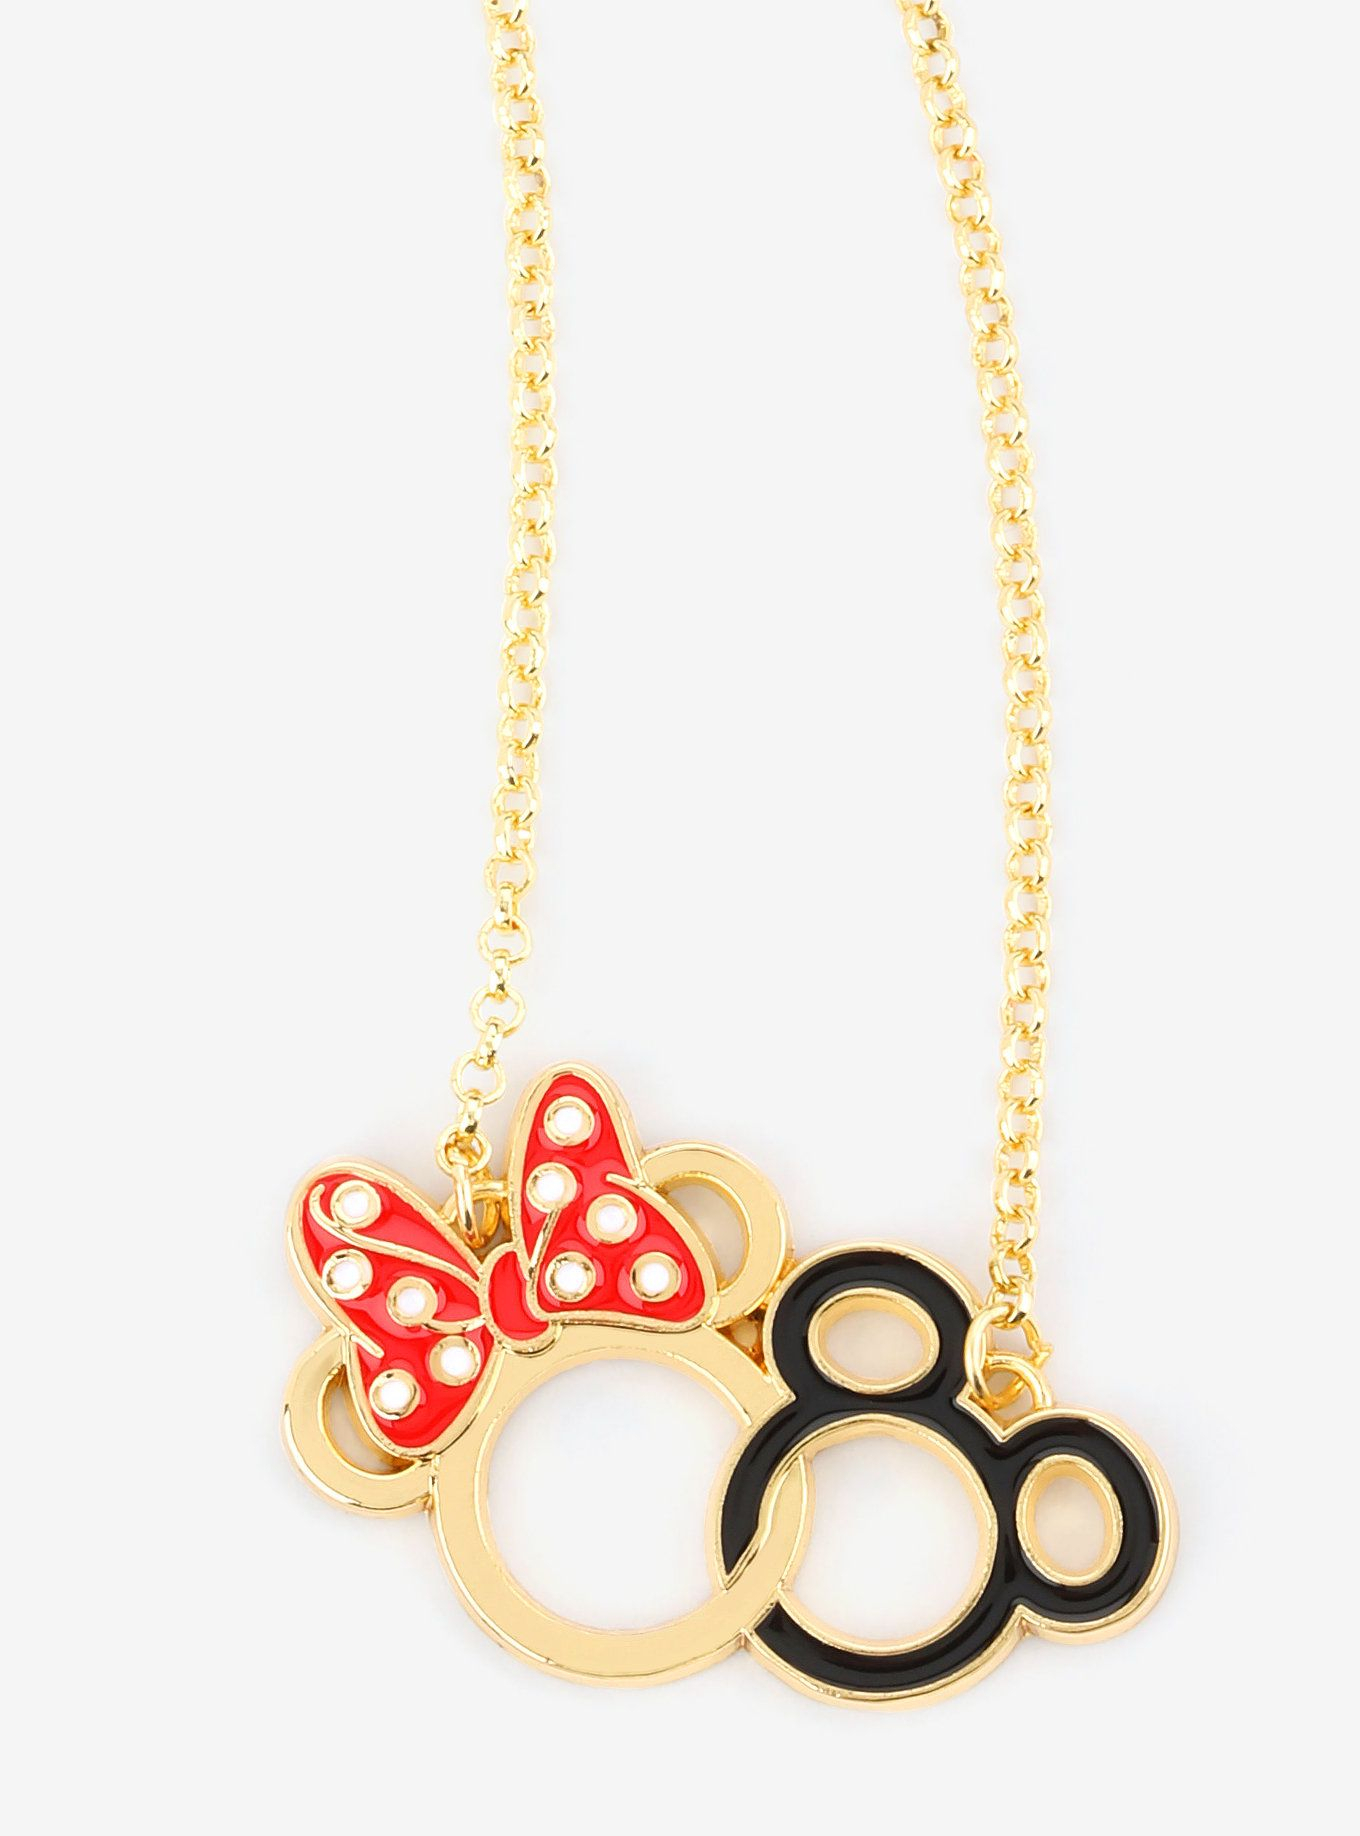 Disney Mickey Mouse & Minnie Mouse Gold Outline Necklace | Necklaces Throughout Current Disney Classic Mickey Pendant Necklaces (View 6 of 25)